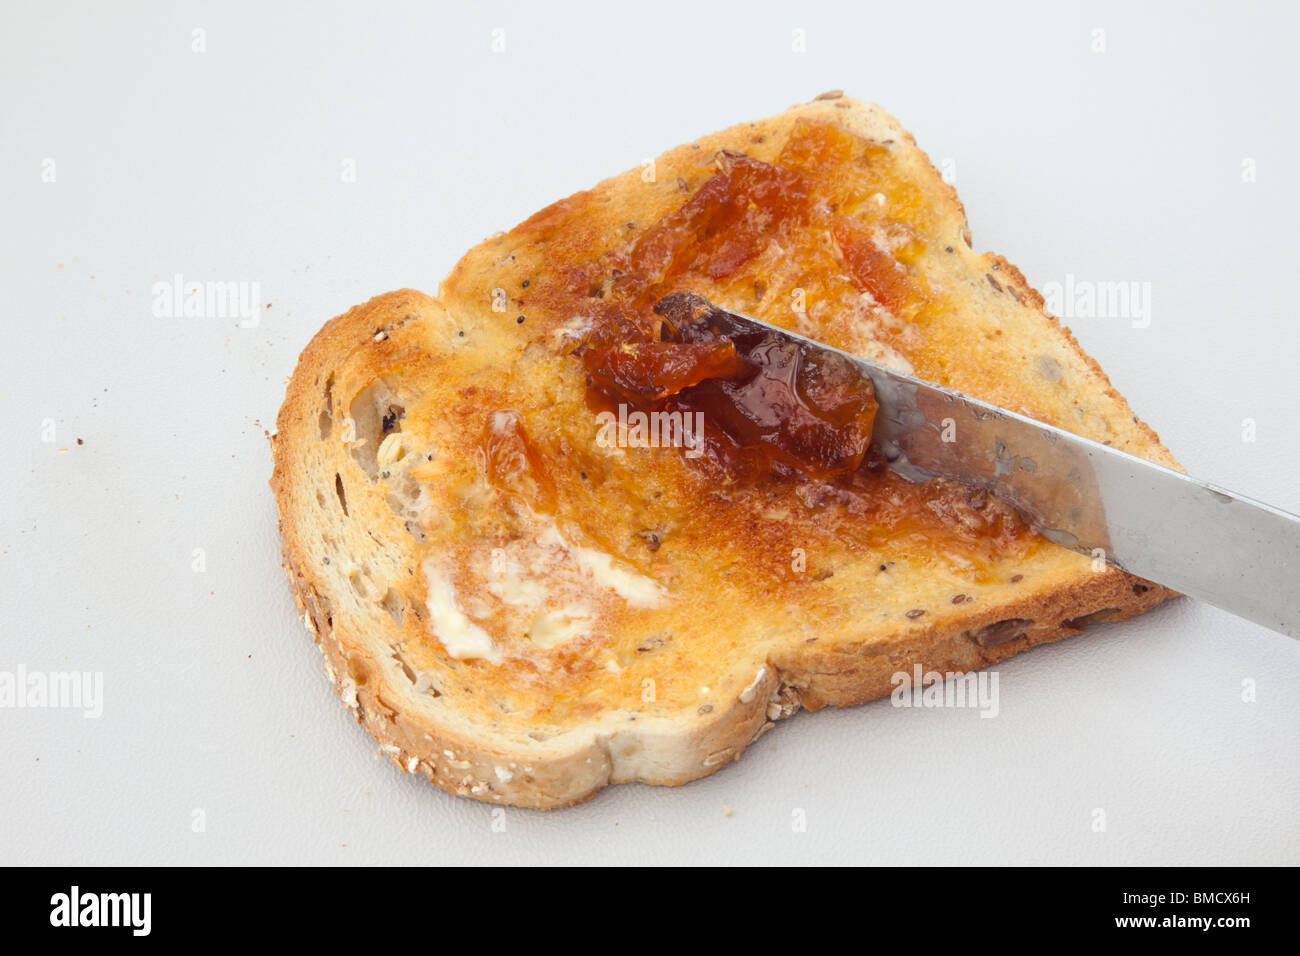 Spreading marmalade on a slice of toast with melted butter using a knife - Stock Image